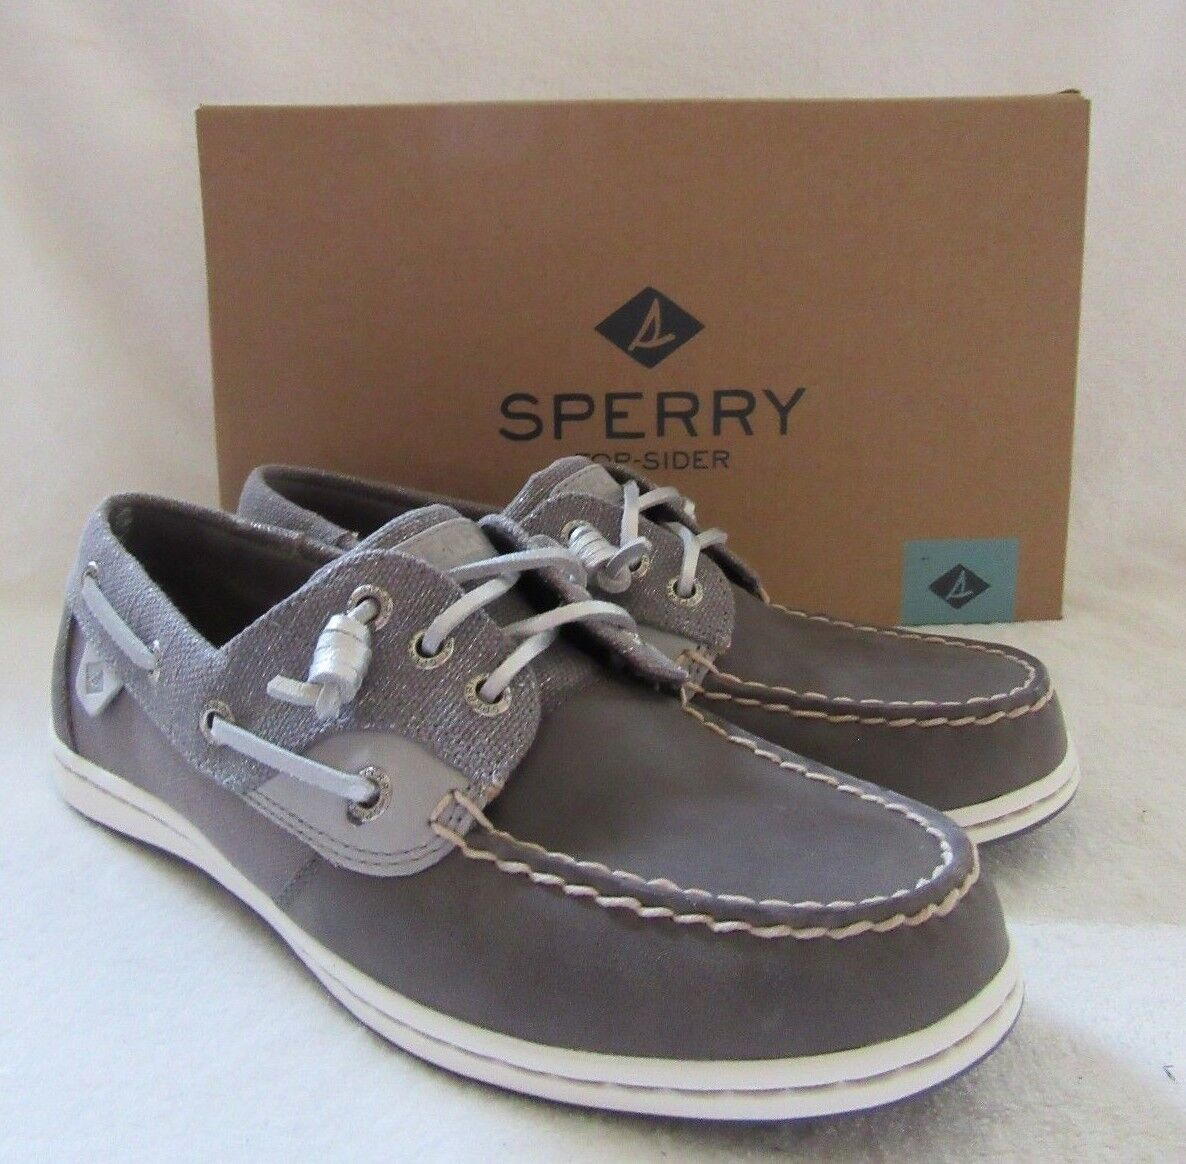 SPERRY Top Sider Songfish Sparkle Grey Leather Boat Shoes US 7.5 M NWB